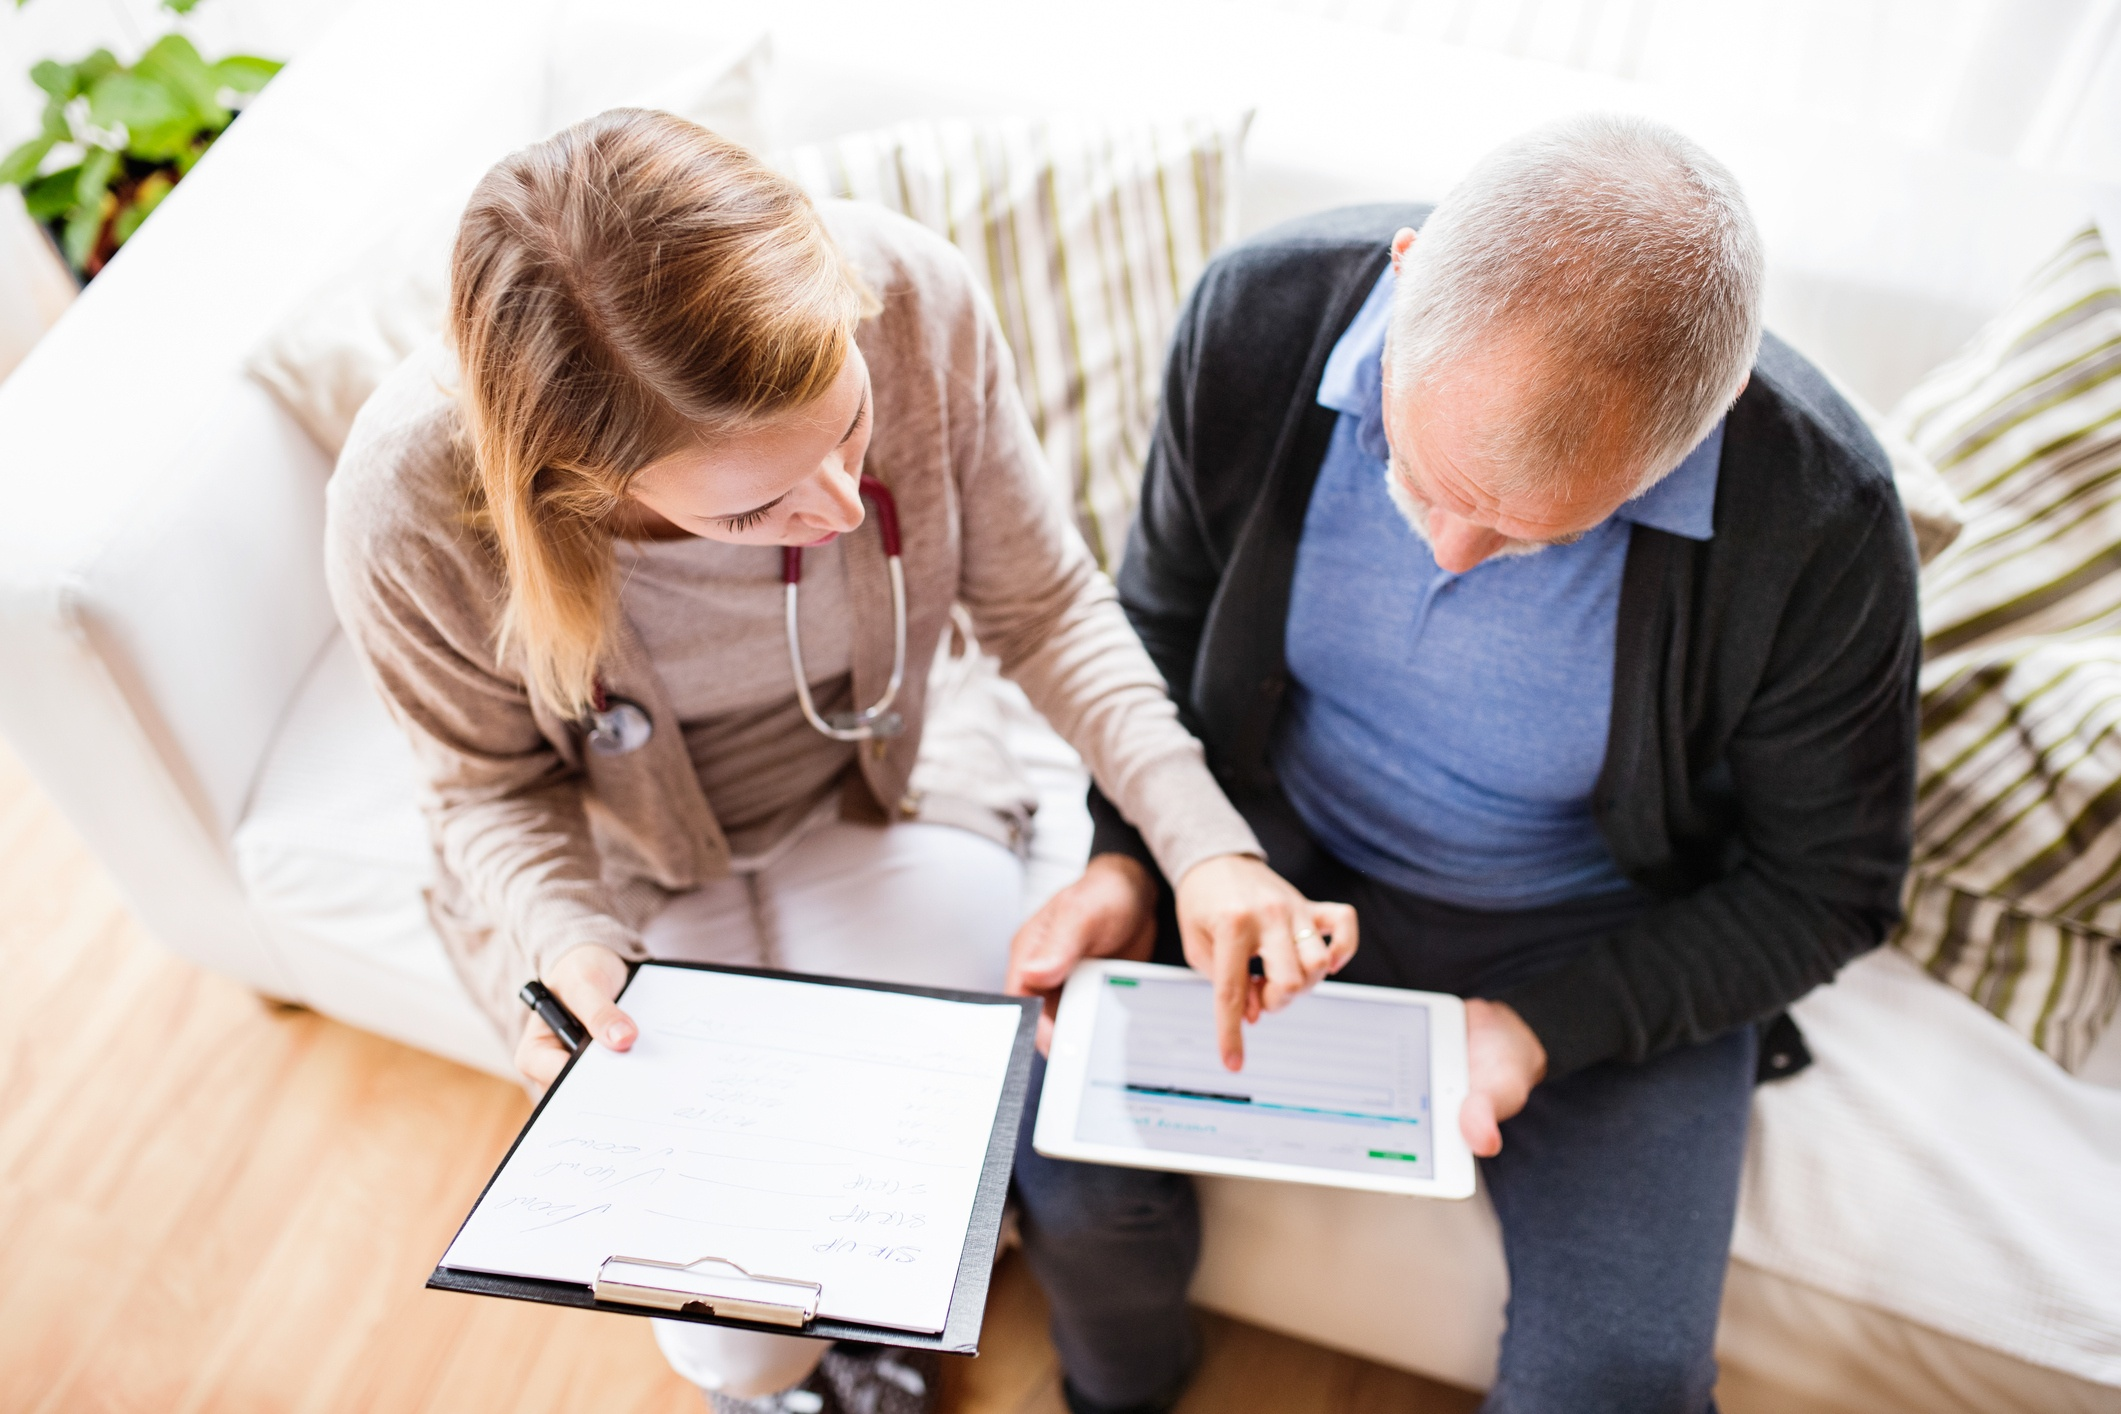 Efficiency Tweaks Can Position Agencies Well Amid Changing Home Care Landscape